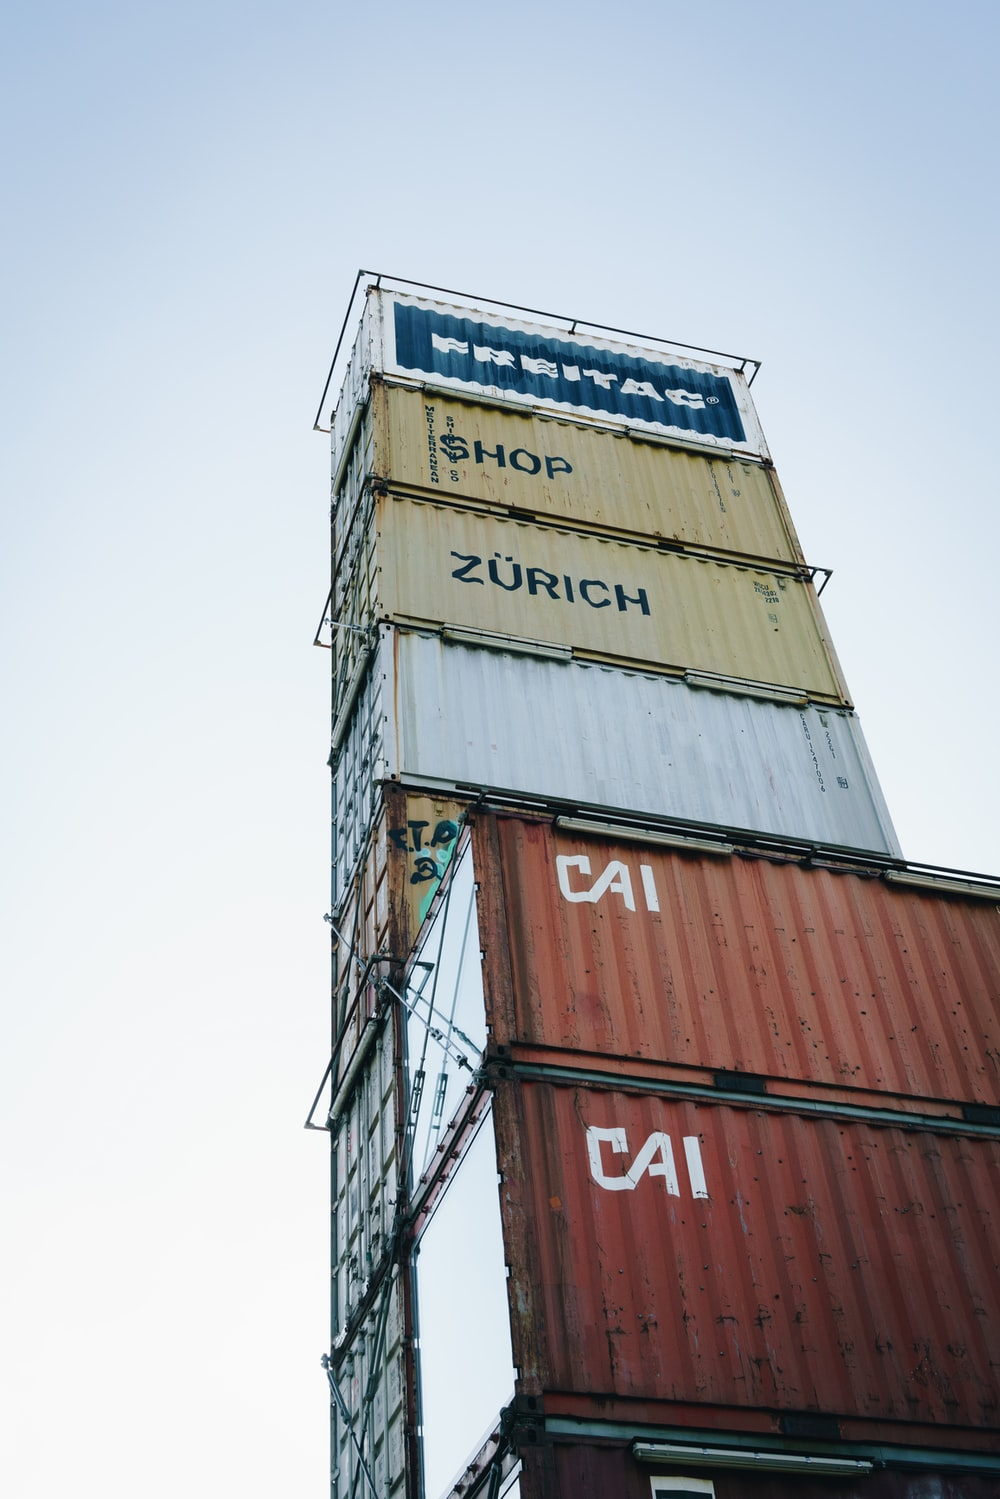 low angle photography of pile of intermodal containers